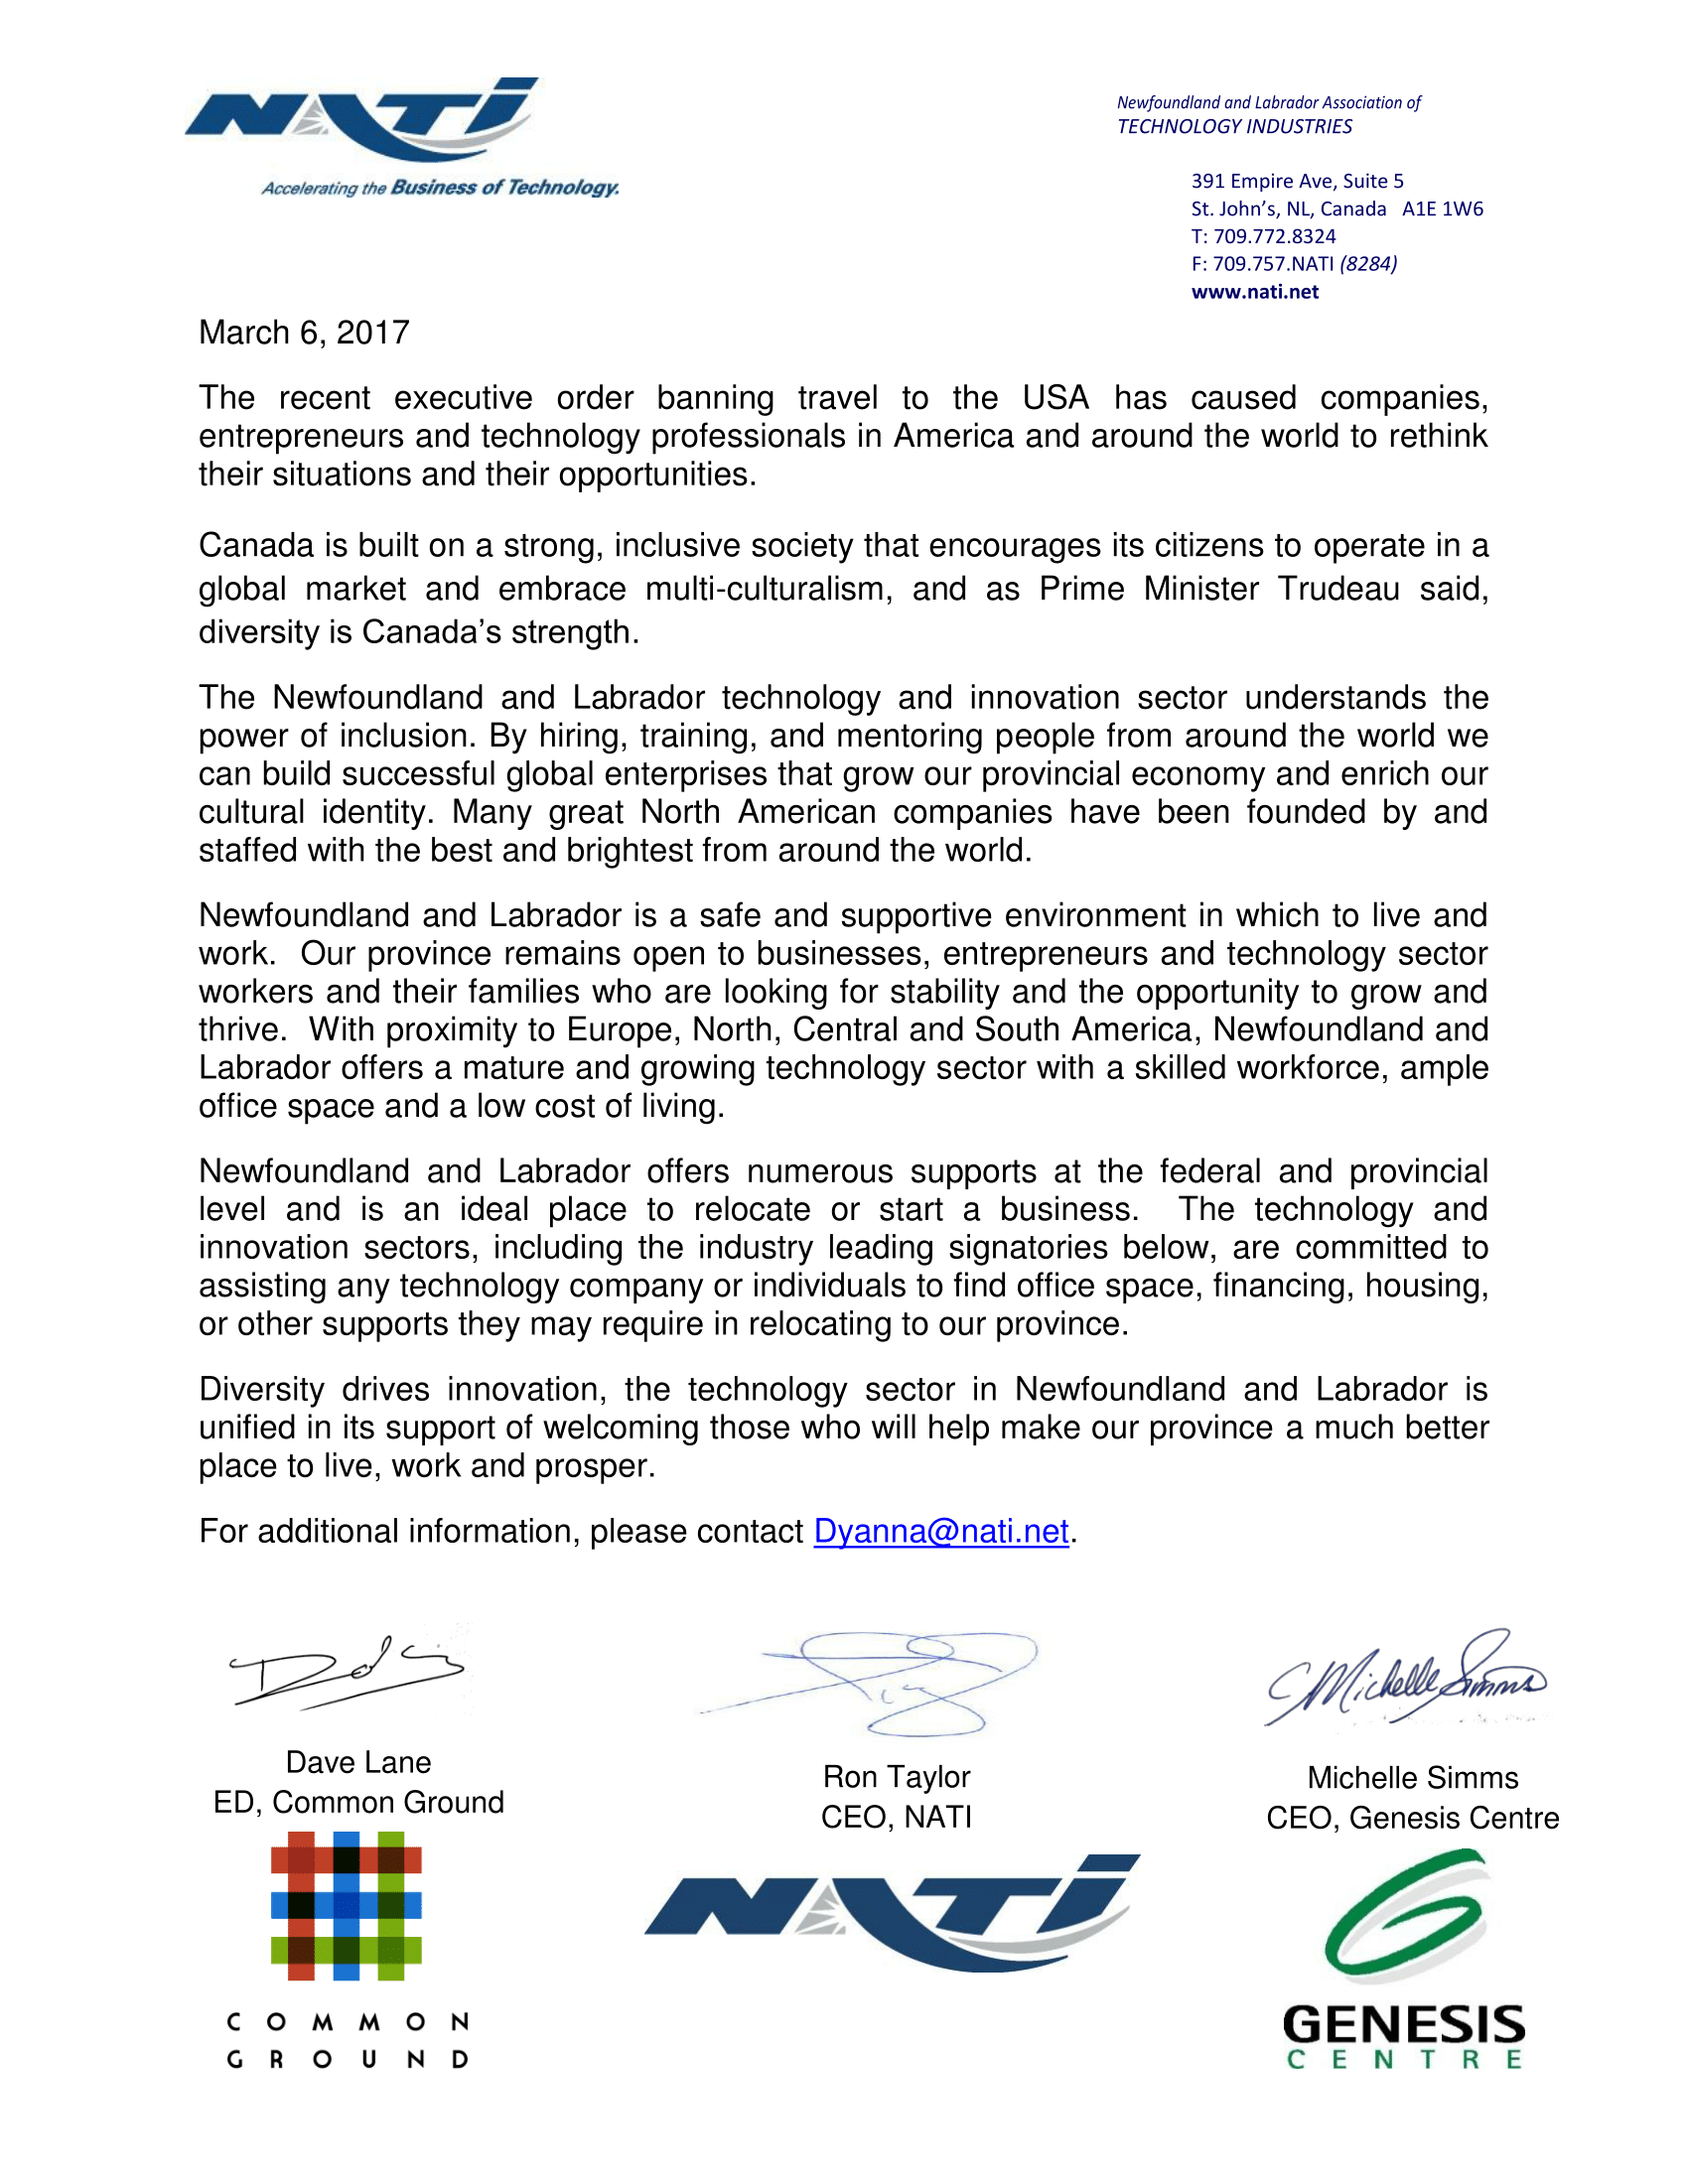 Open letter in Response to USA Travel Ban-1.png